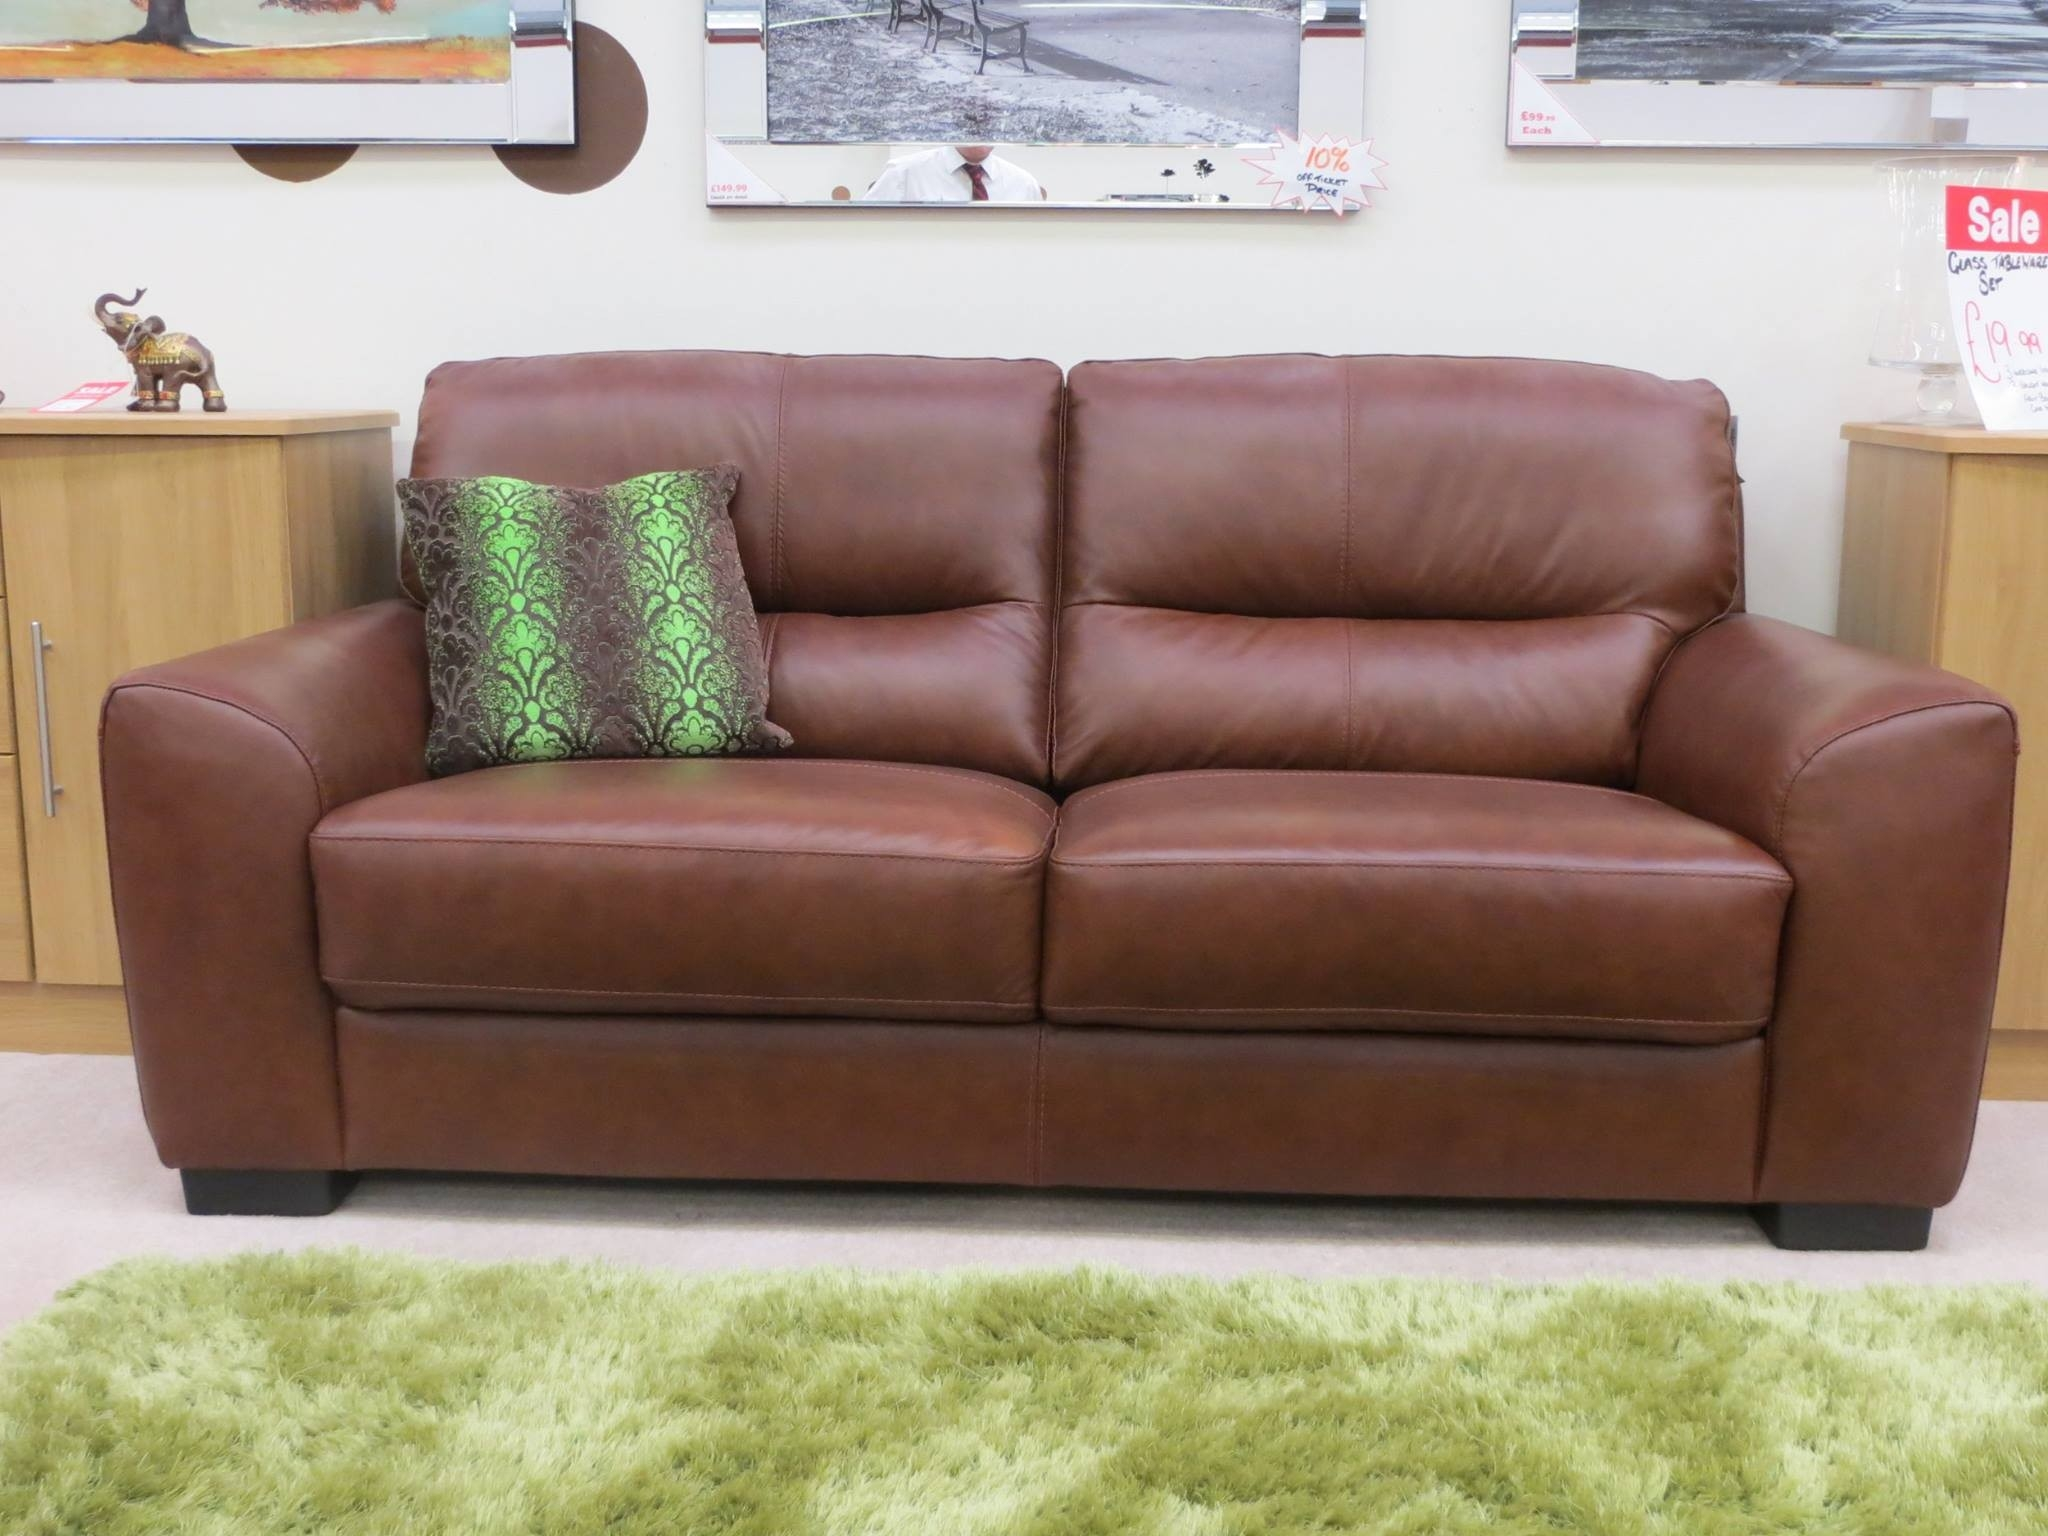 Epic Leather Sofas And Chair On Mid Century Modern Chair With For Sofas And Chairs (View 15 of 15)